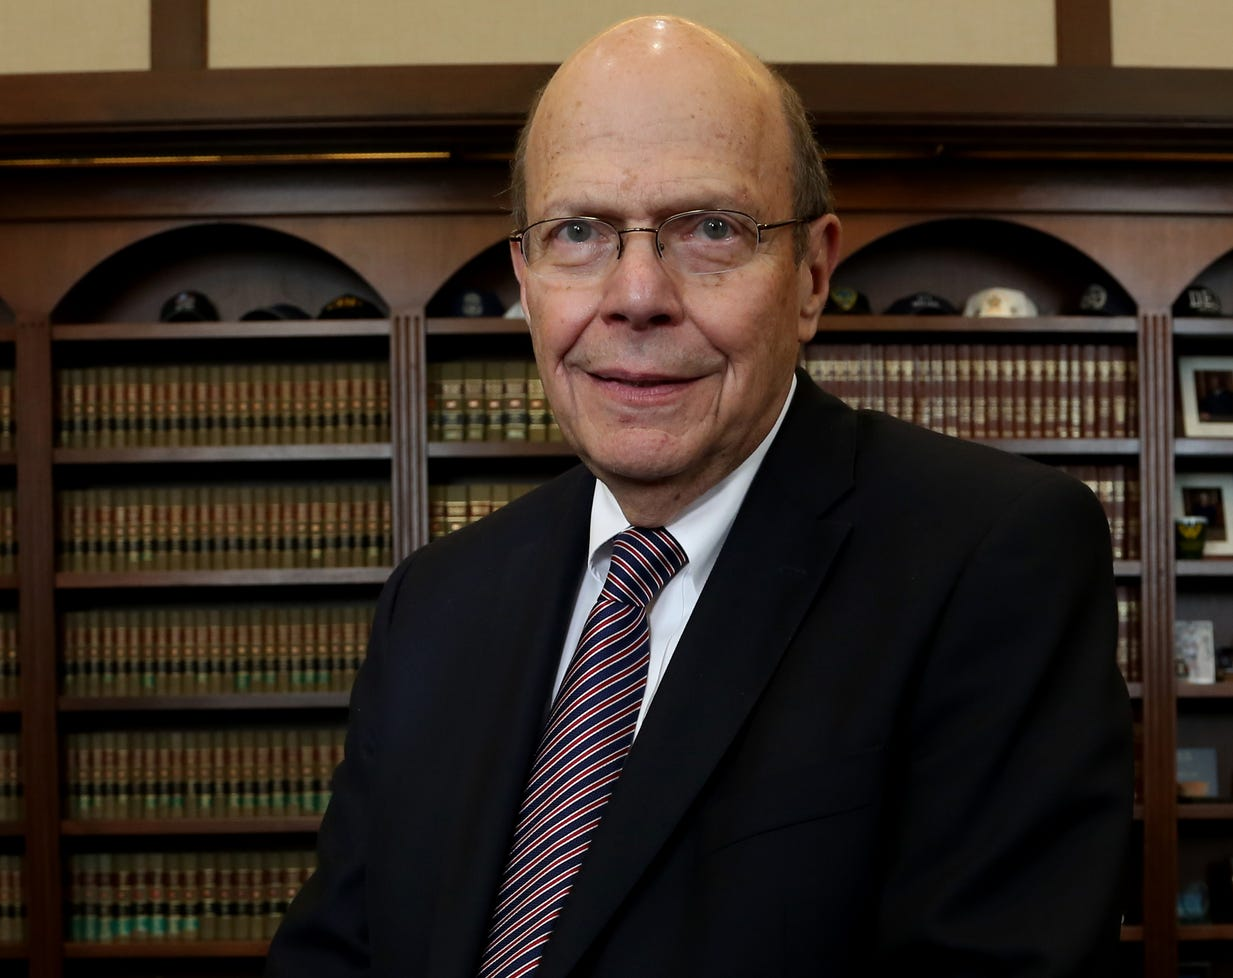 Judge Bernard Friedman photographed in his office at the Theodore Levin U.S. Courthouse in Detroit, Michigan on Tuesday Sept. 22, 2015.